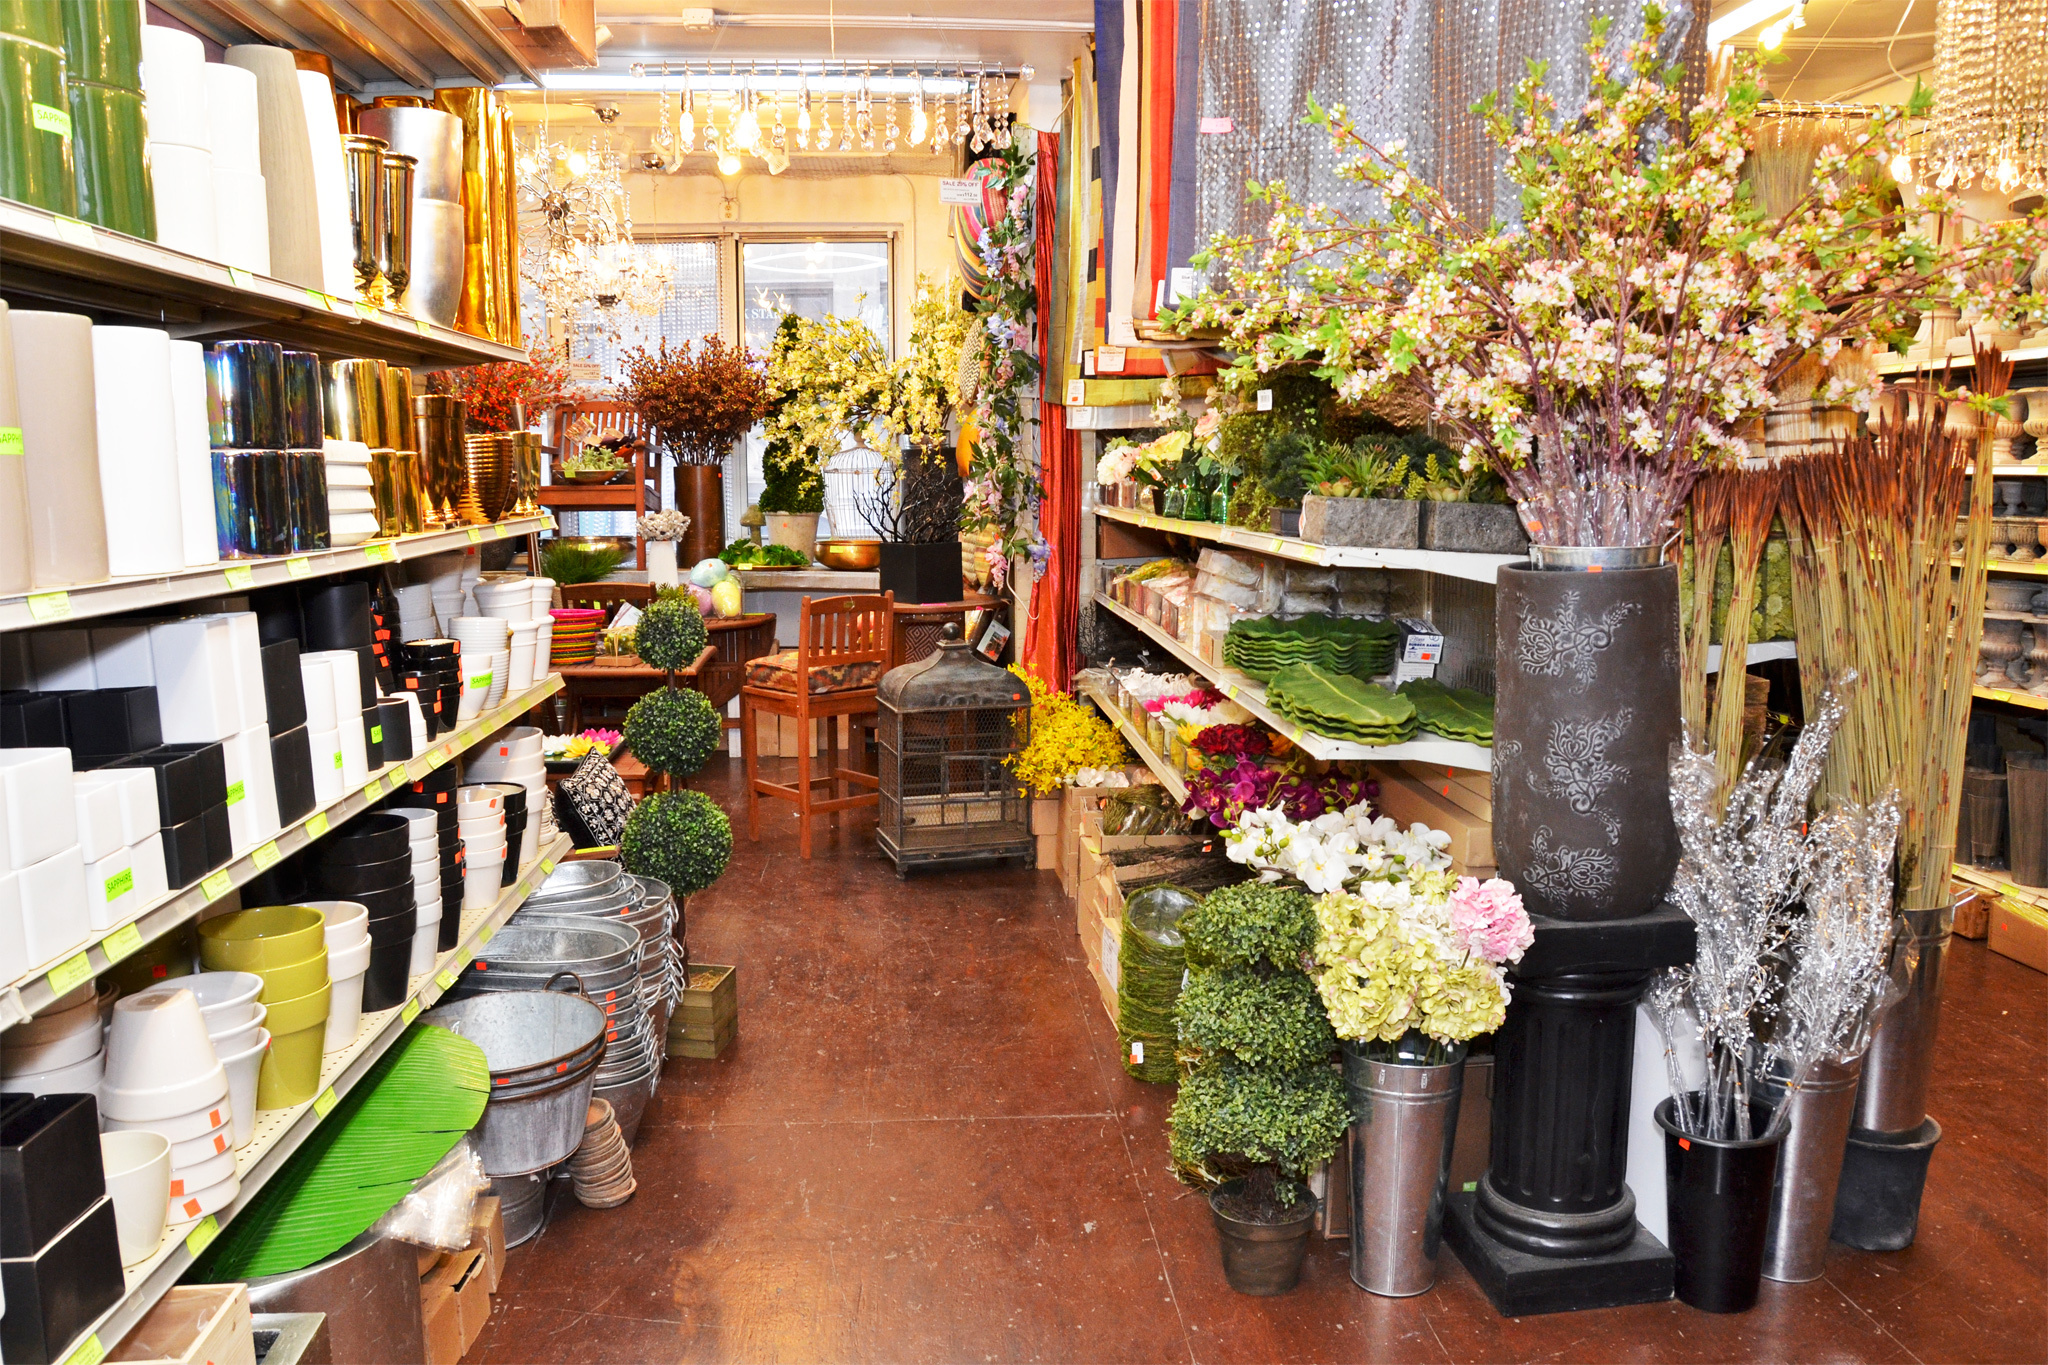 Jamali garden shopping in chelsea new york - Garden center madrid ...